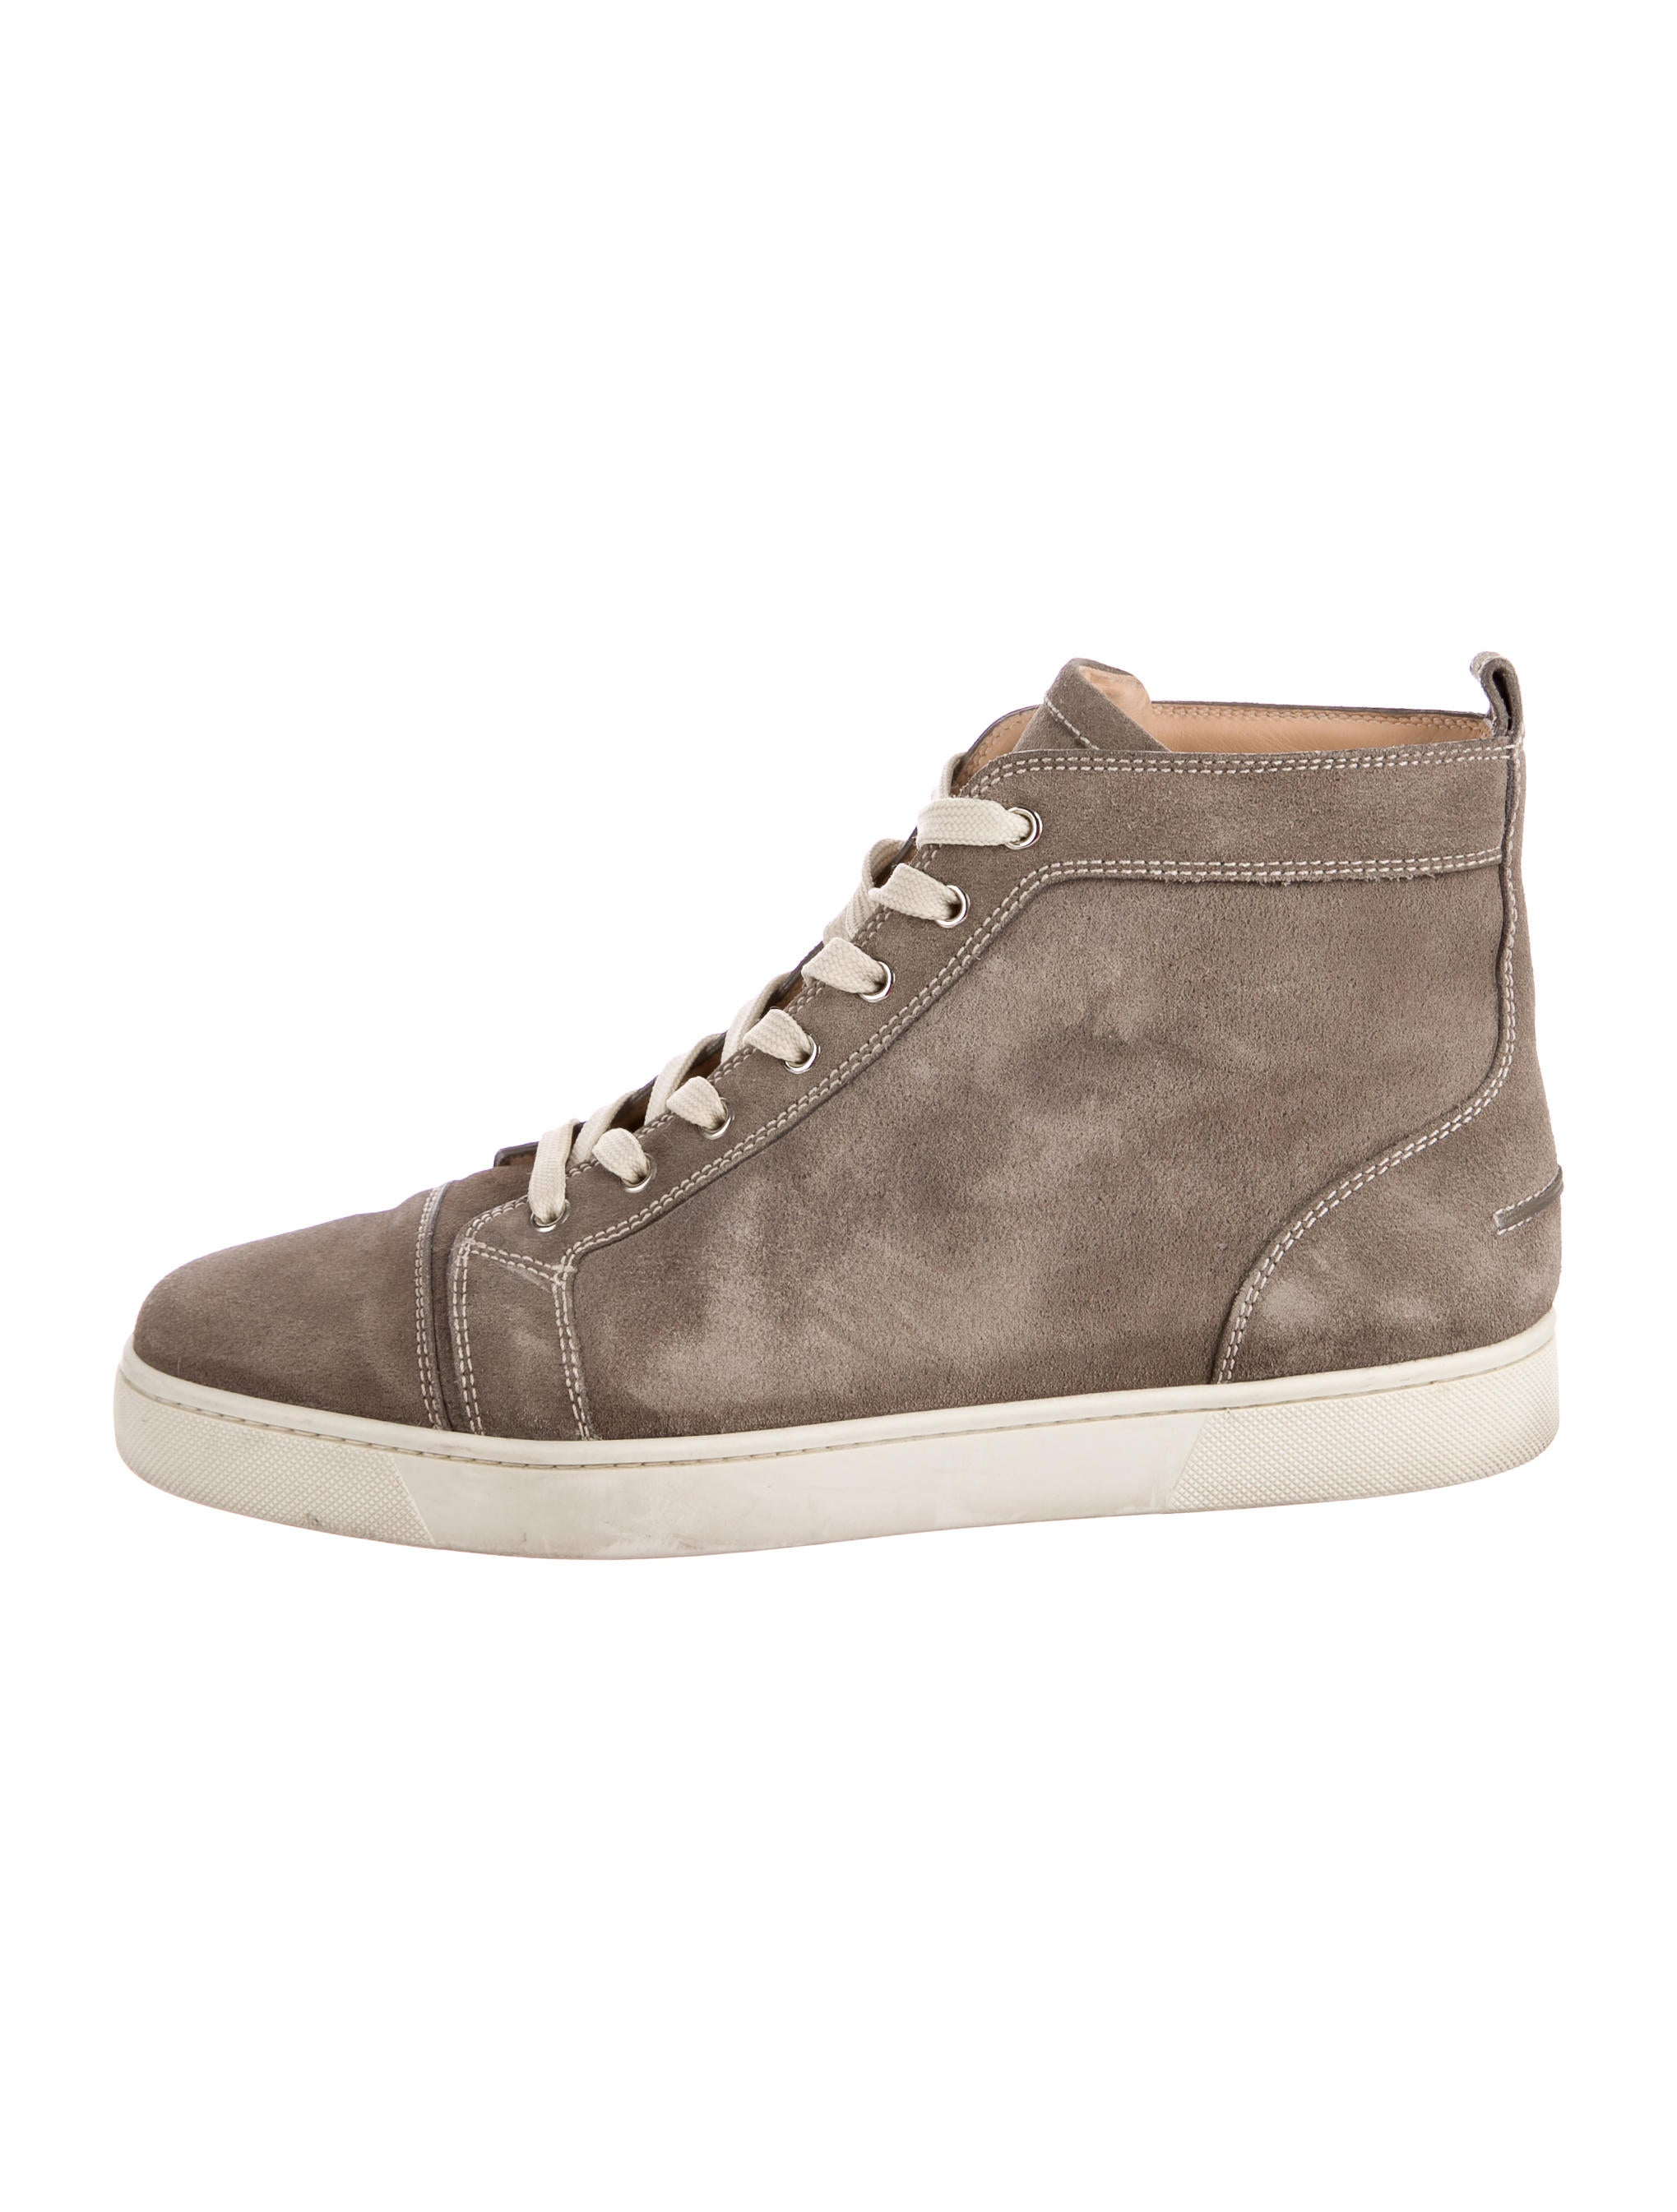 brand new f2275 50f17 Christian Louboutin Bip Bip Suede Sneakers - Shoes ...